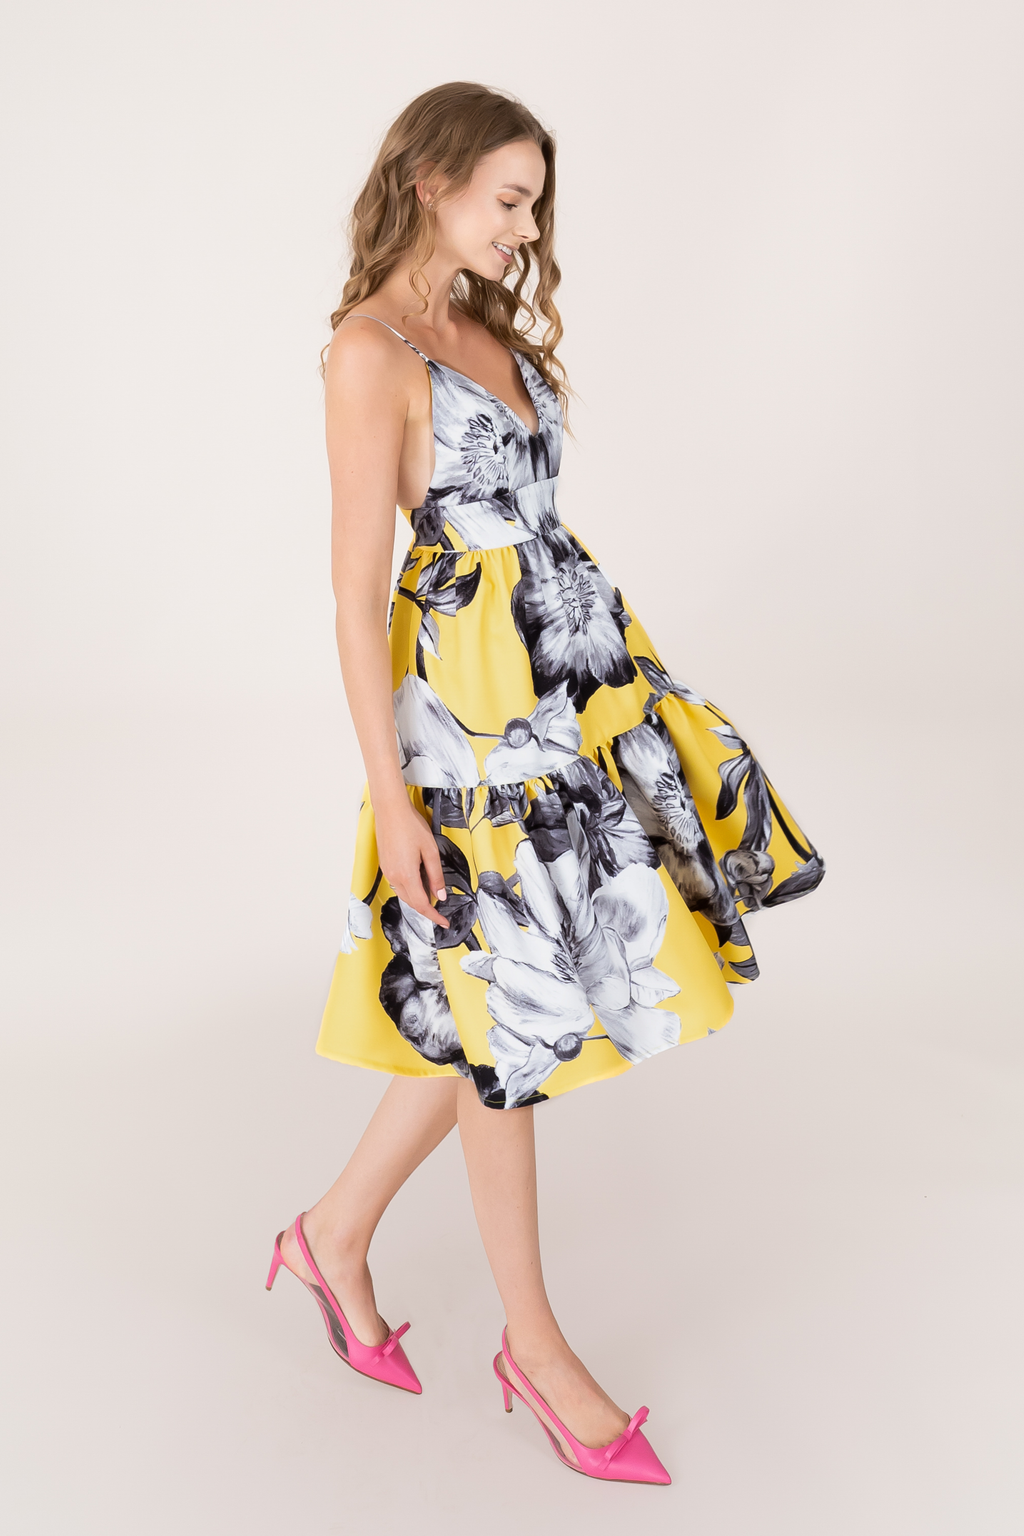 SS Floral Print Buttercup Dress - Short